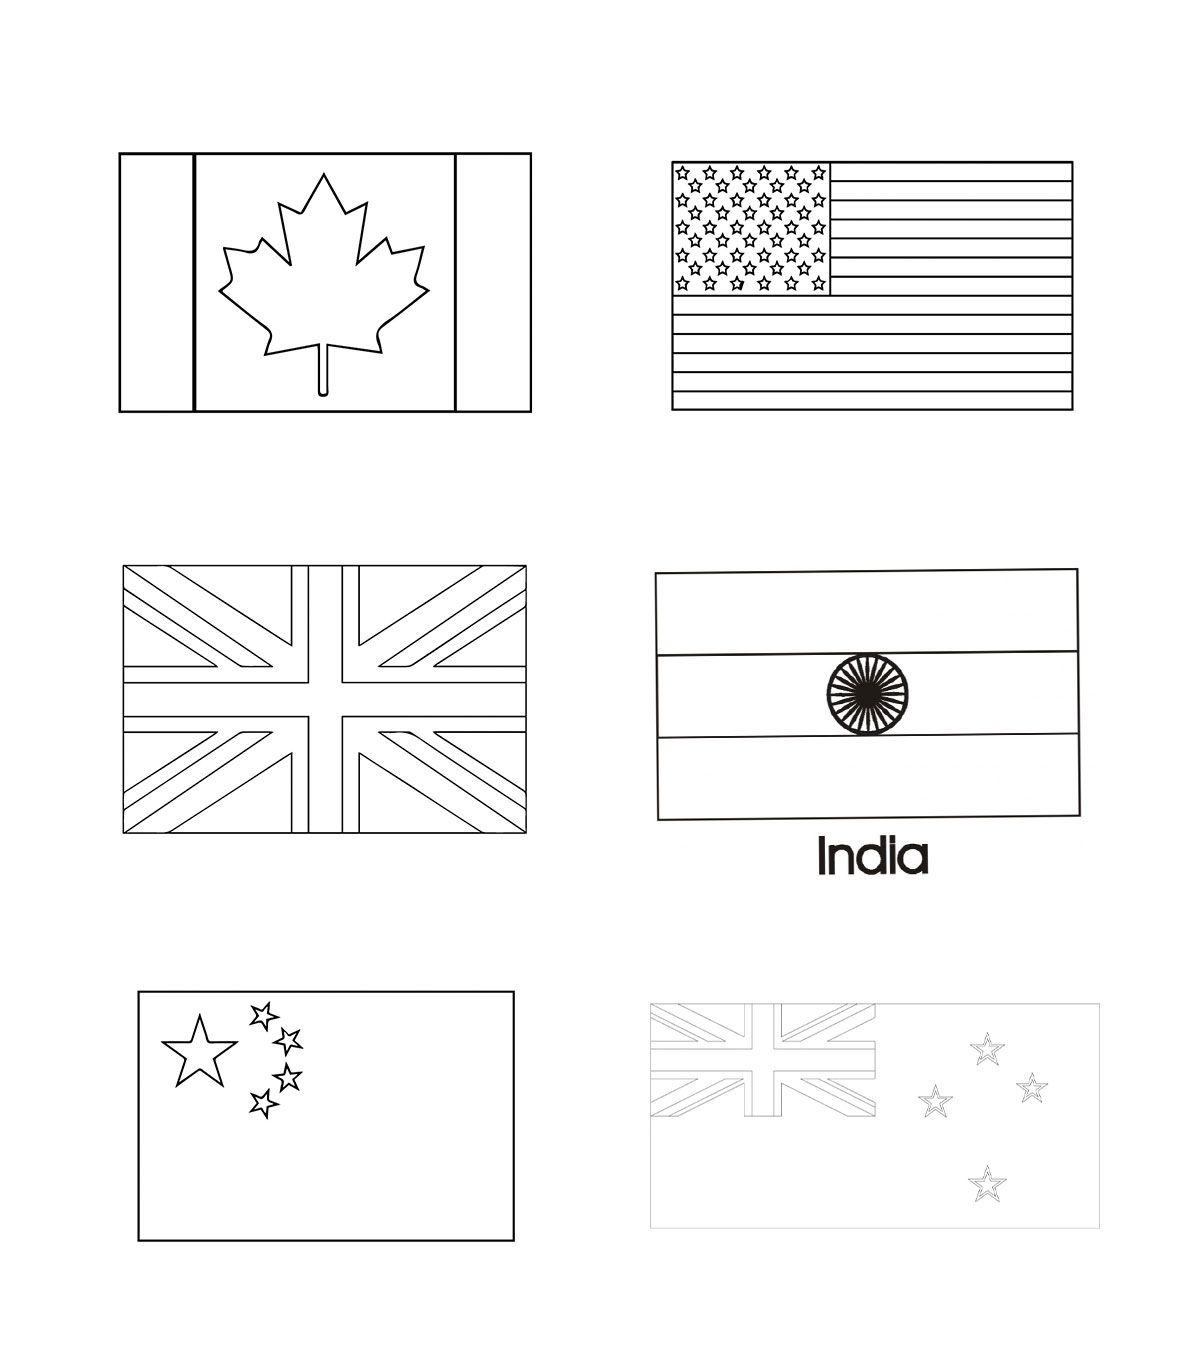 Top Country And World Flags Coloring Pages For Your Toddler In 2020 Flag Coloring Pages Flags Of The World World Flags Printable